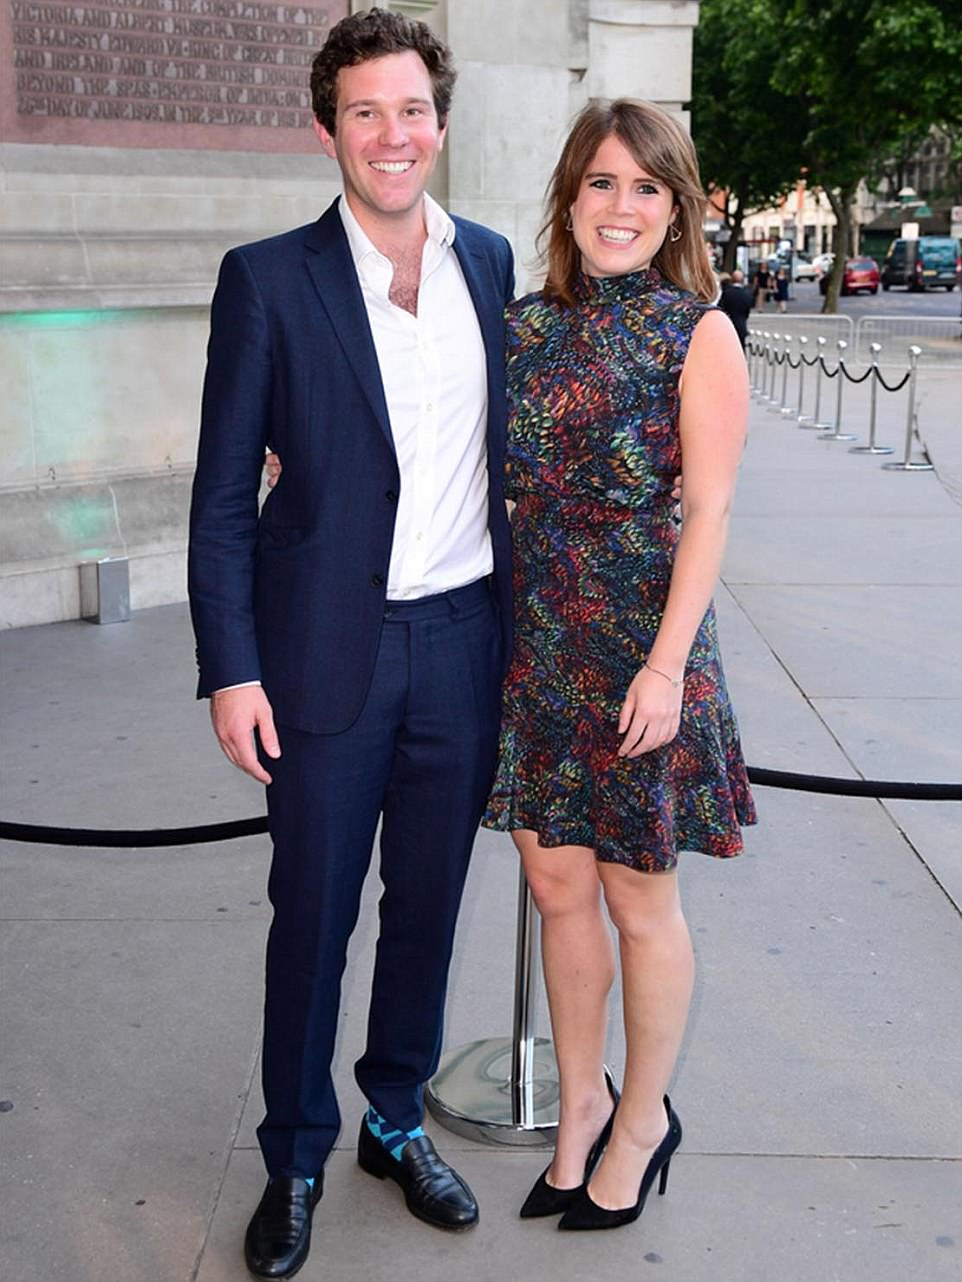 Princess Eugenie, 27, is engaged to her long-term boyfriend Jack Brooksbank and they'll marry at St George's Chapel in Windsor